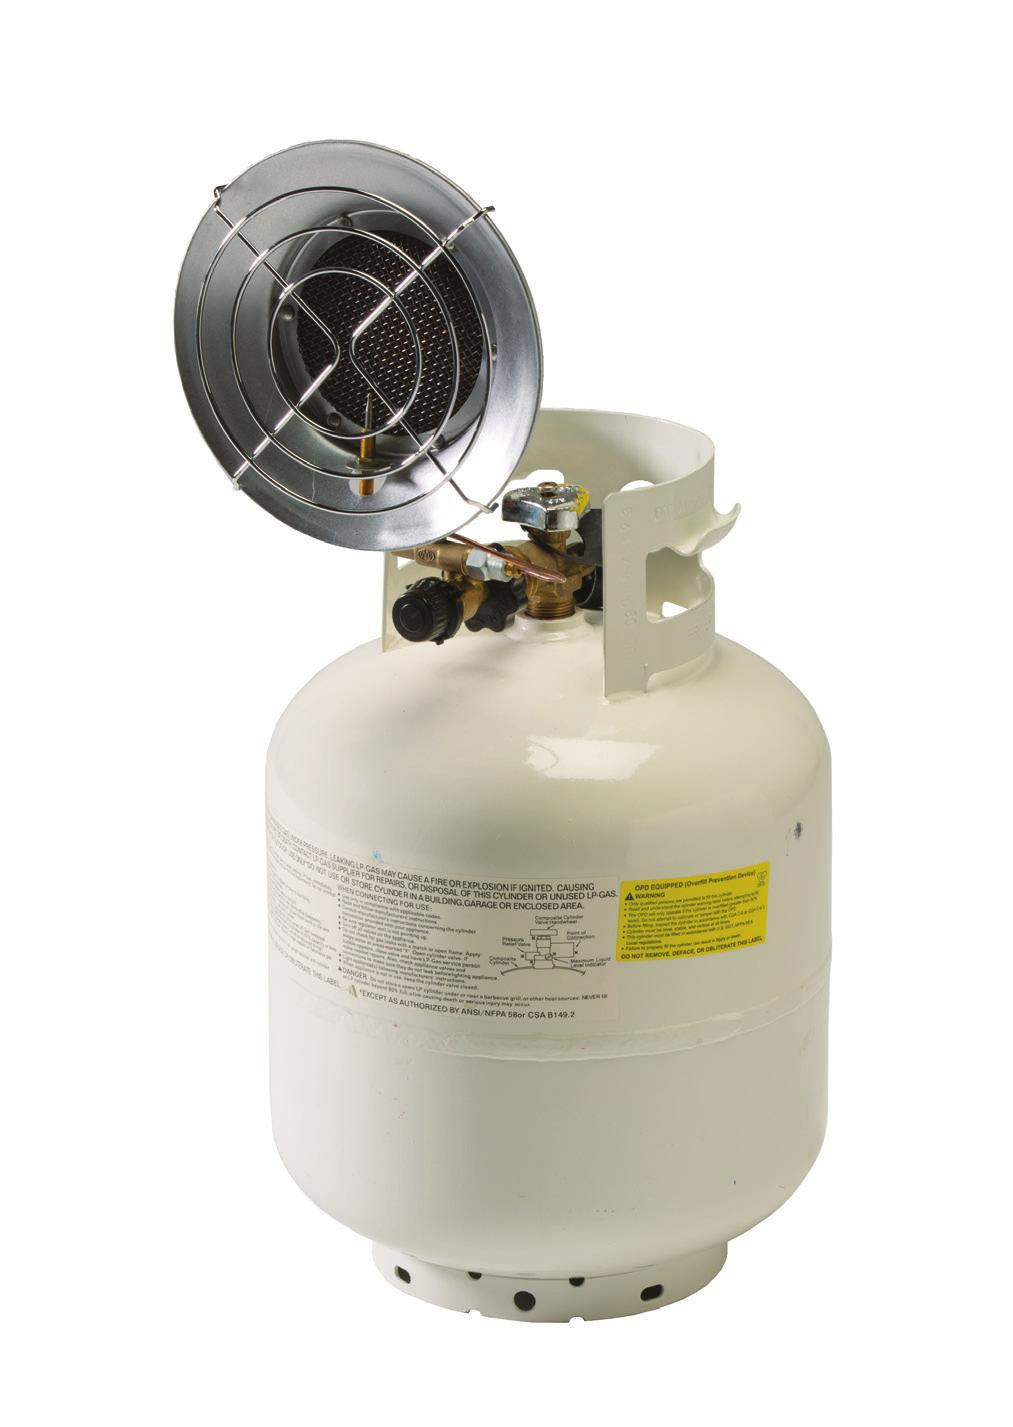 Propane Heaters 14217 Deluxe Propane Heater Connects to bulk tank (not included) Durable ceramic burner for even heating and increased heat radiation On/off control knob adjusts burner up to